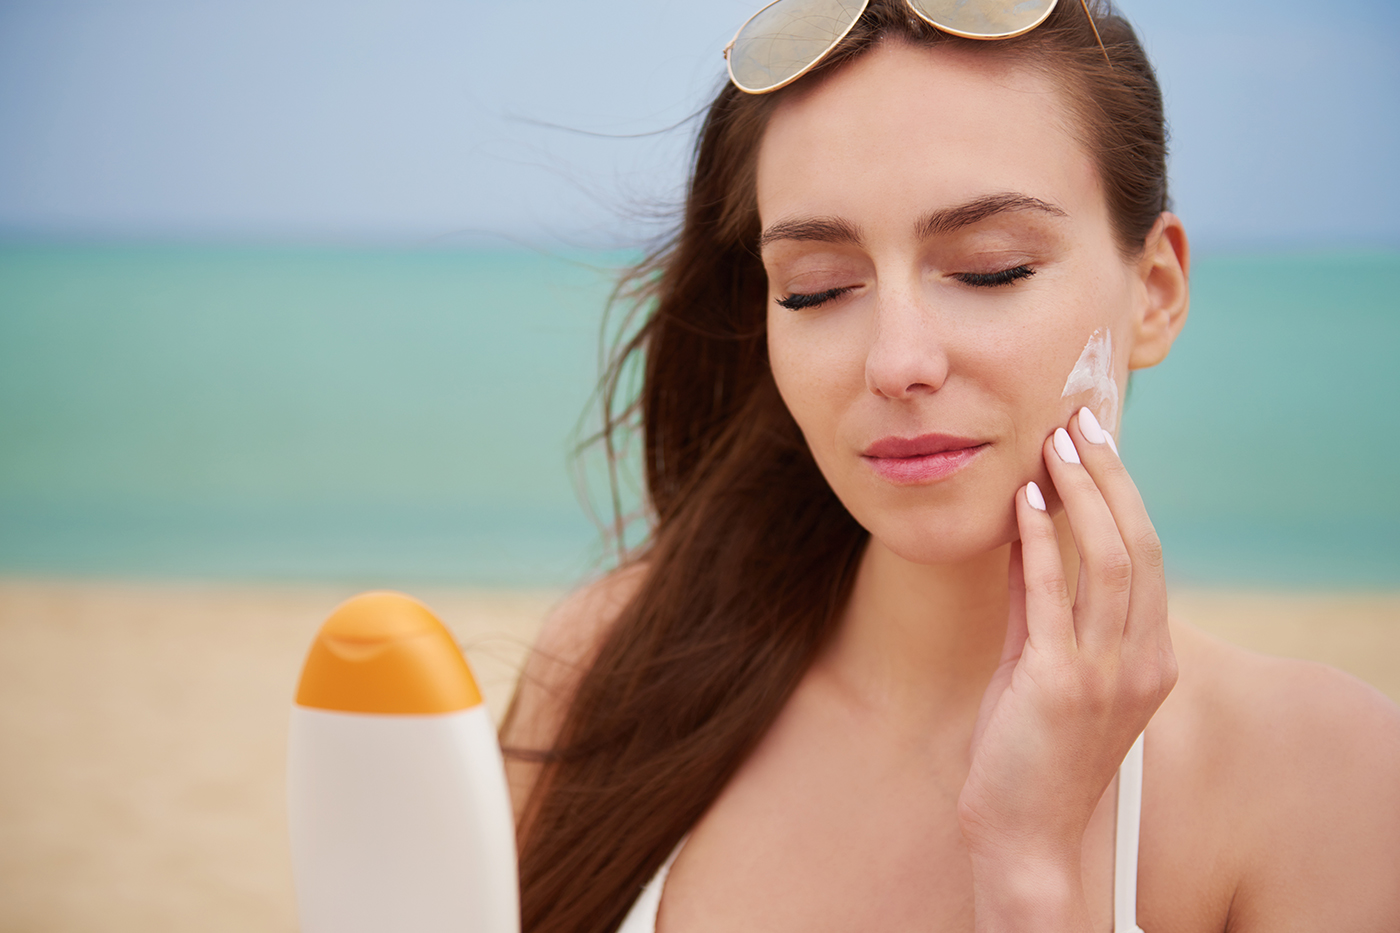 Negative news about safety of sunscreens affects consumer confidence